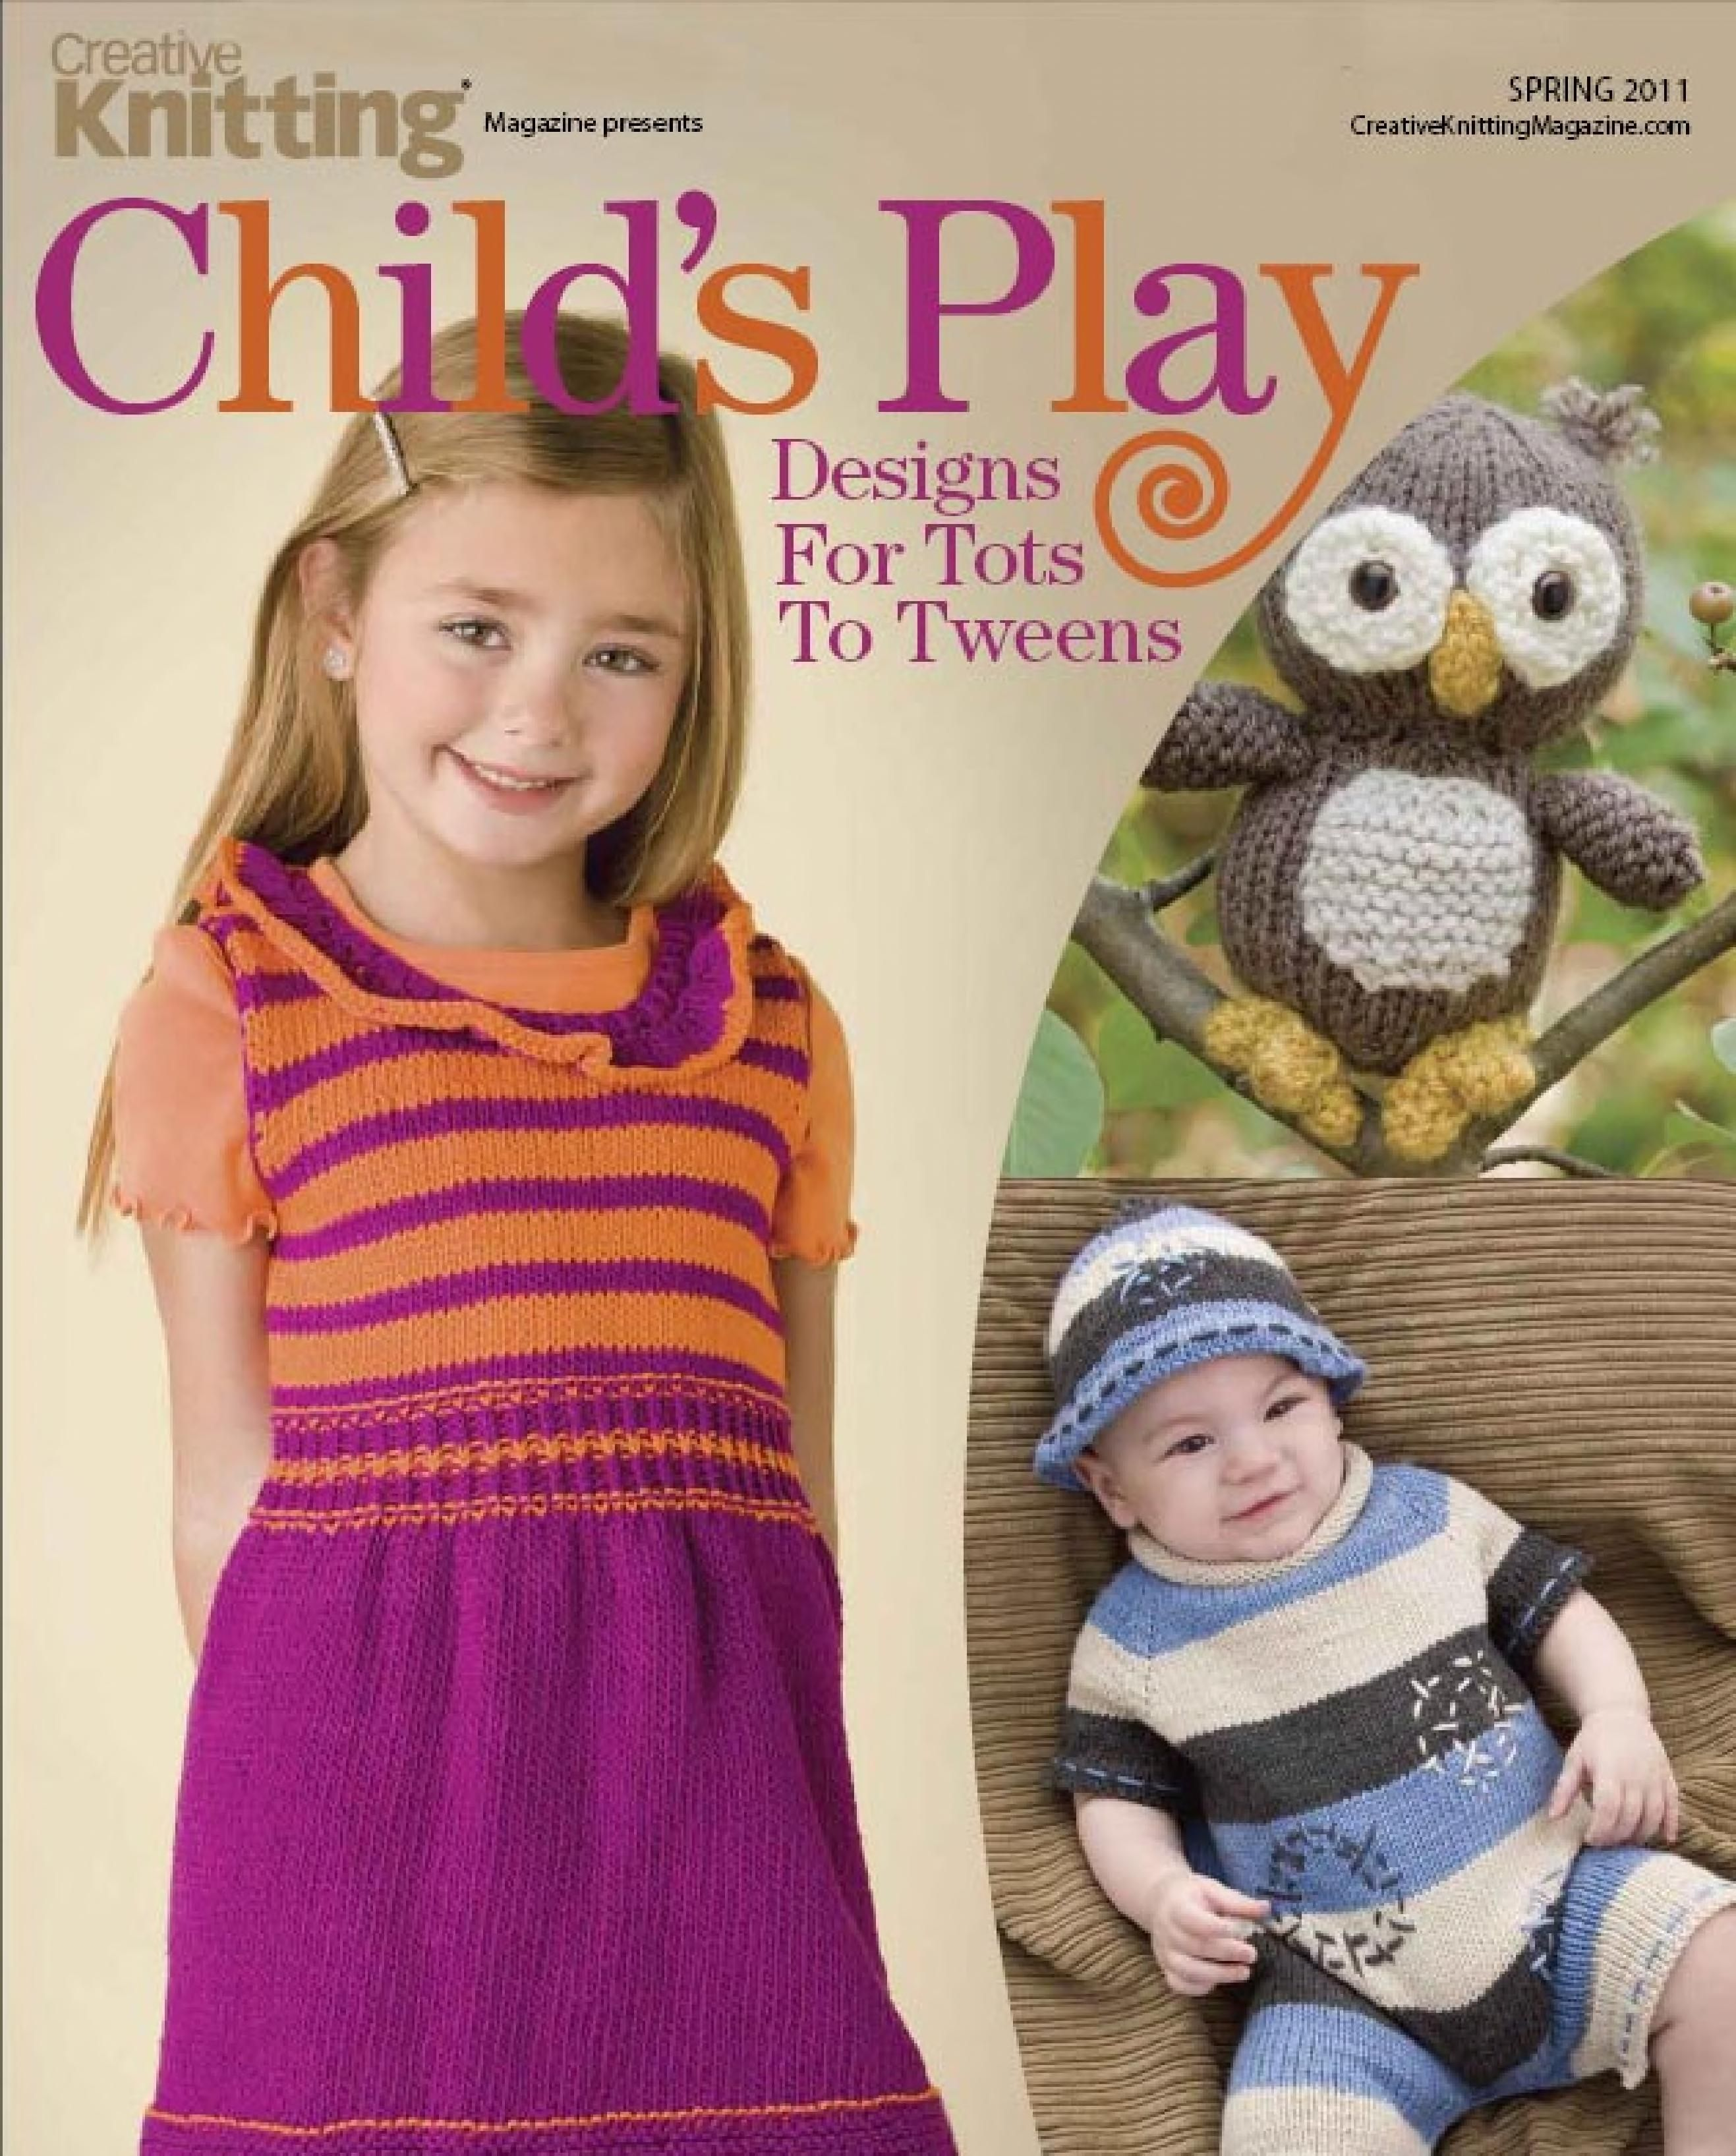 Creative Knitting 2011 04 Childs Play | Handwork - Knitting ...